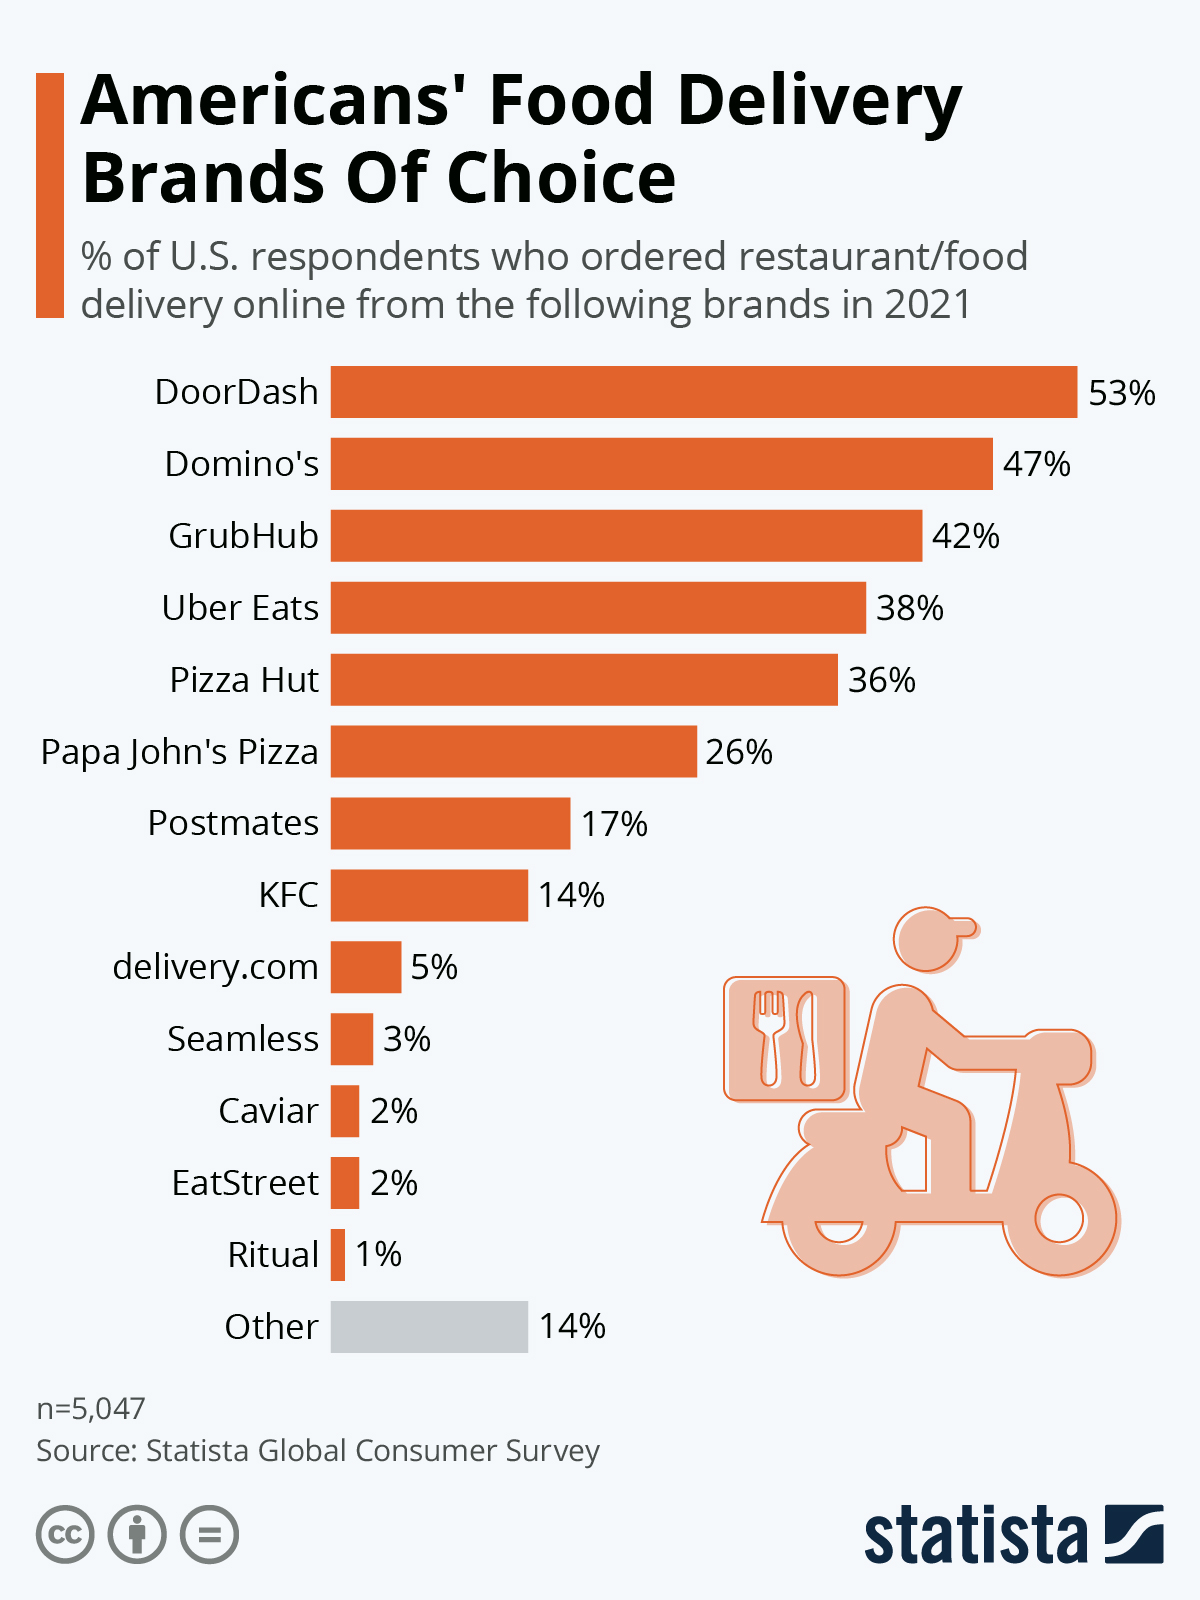 Food delivery brands: which is American's brand of choice?